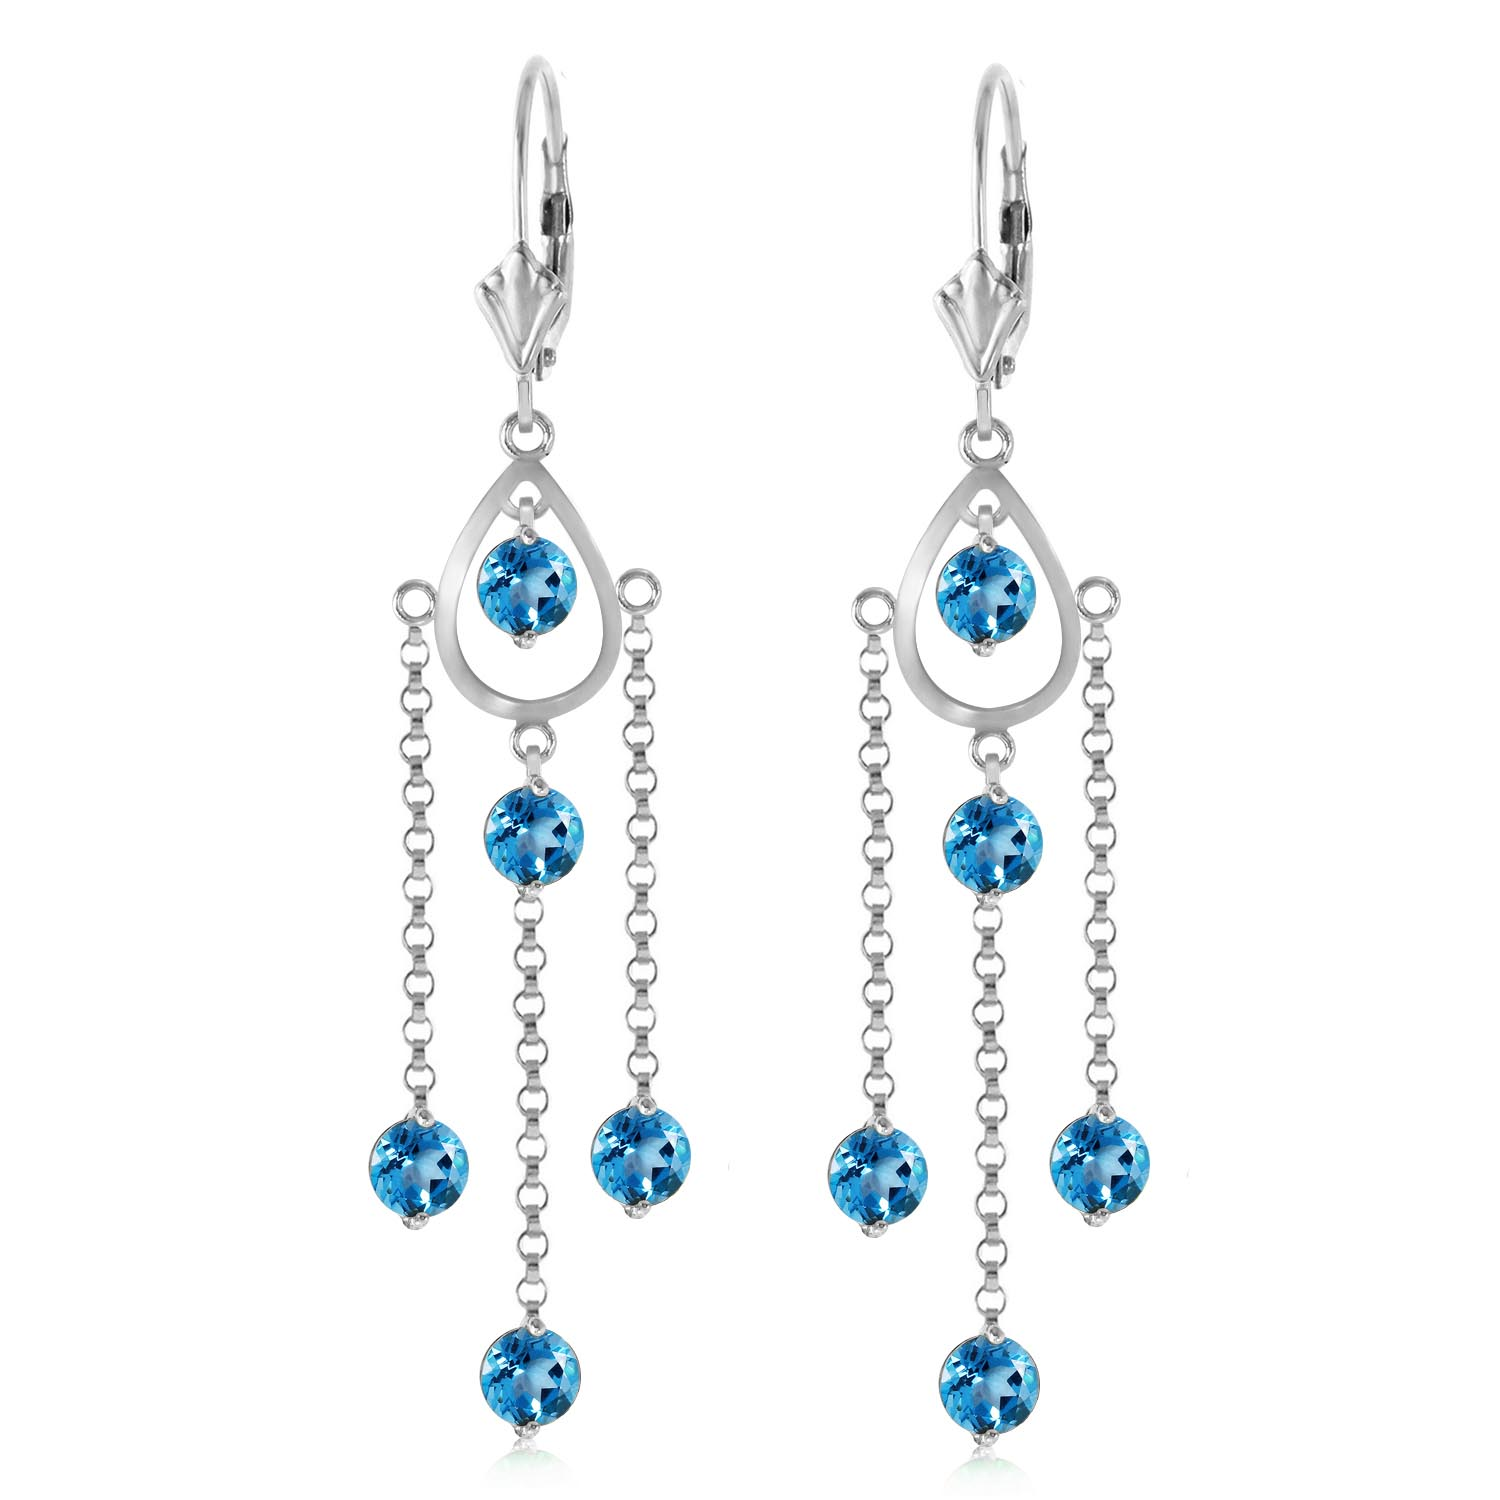 Blue Topaz Faro Drop Earrings 3.0ctw in 14K White Gold